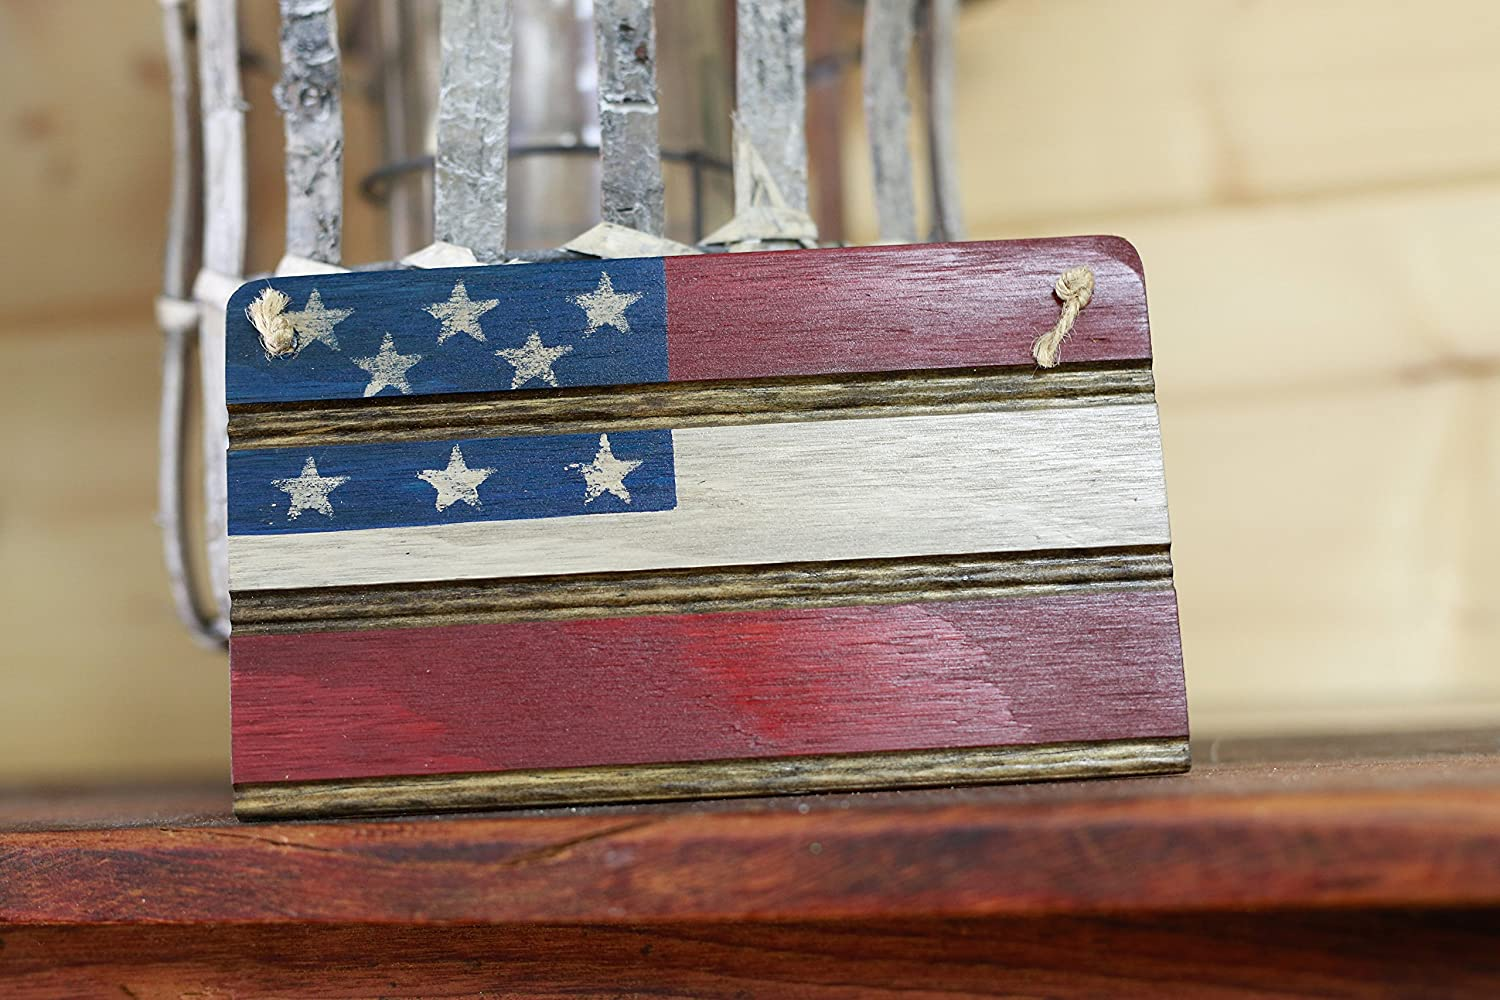 adfb3392620c Amazon.com  Americana American Flag Wooden Wall Decor. Perfect for any  Nostalgic Americana Collection and Rustic Decor. Hand Made in the Heart of  America.